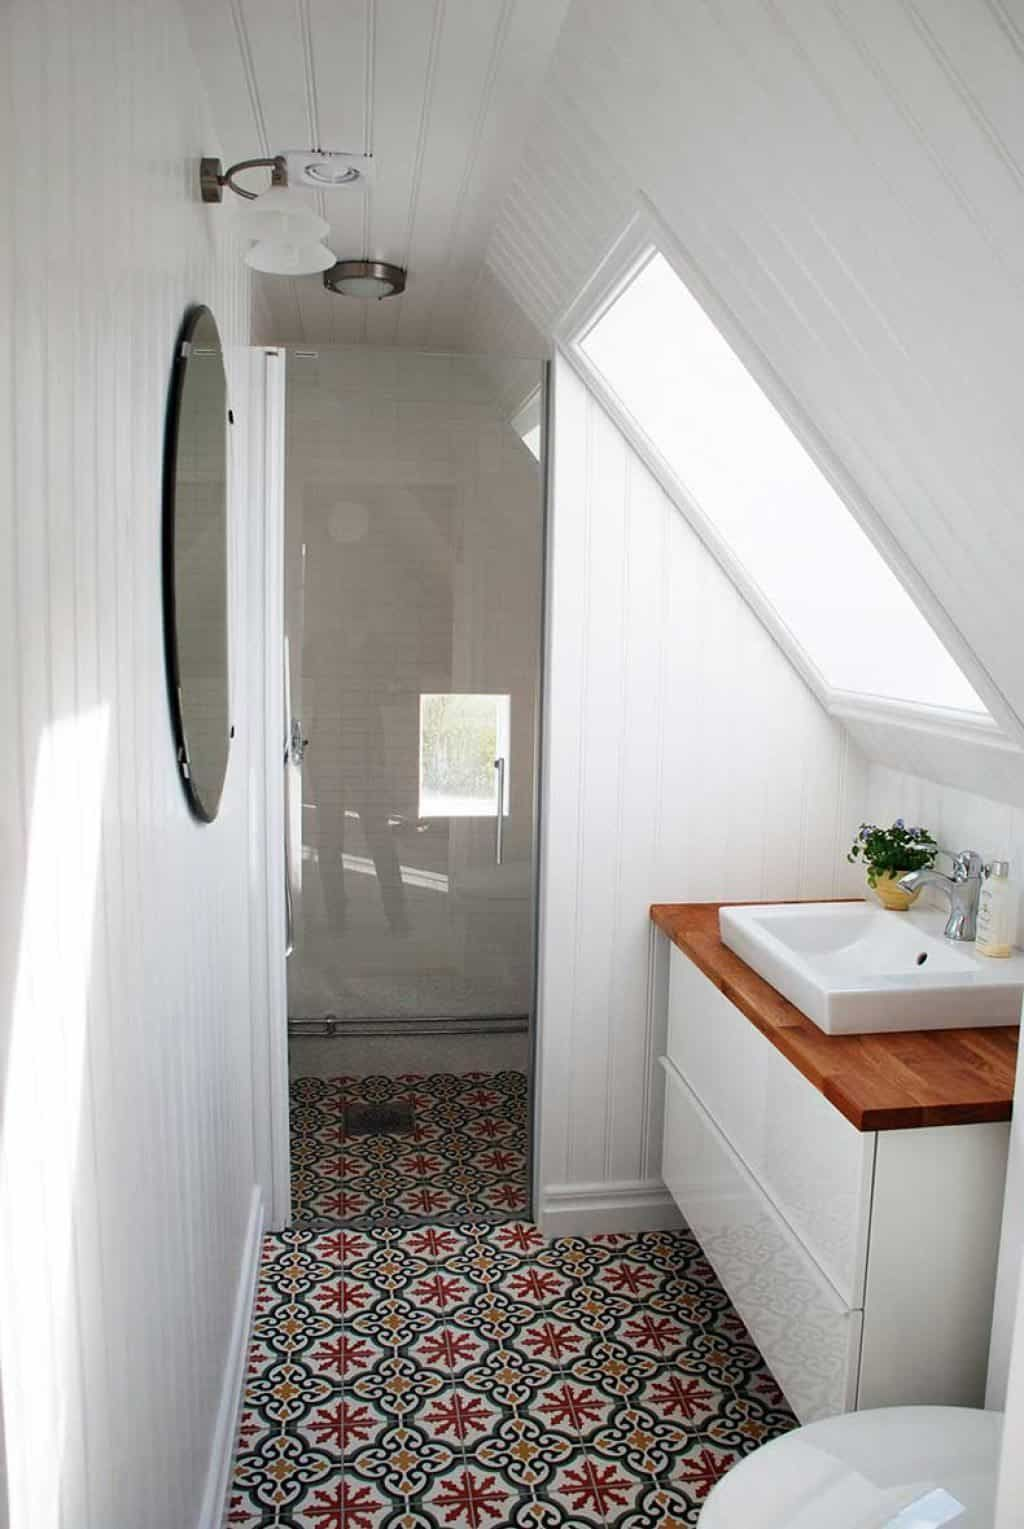 Adding An Attic Bathroom In Your House Small Attic Bathroom Upstairs Bathrooms Small Bathroom Tiles